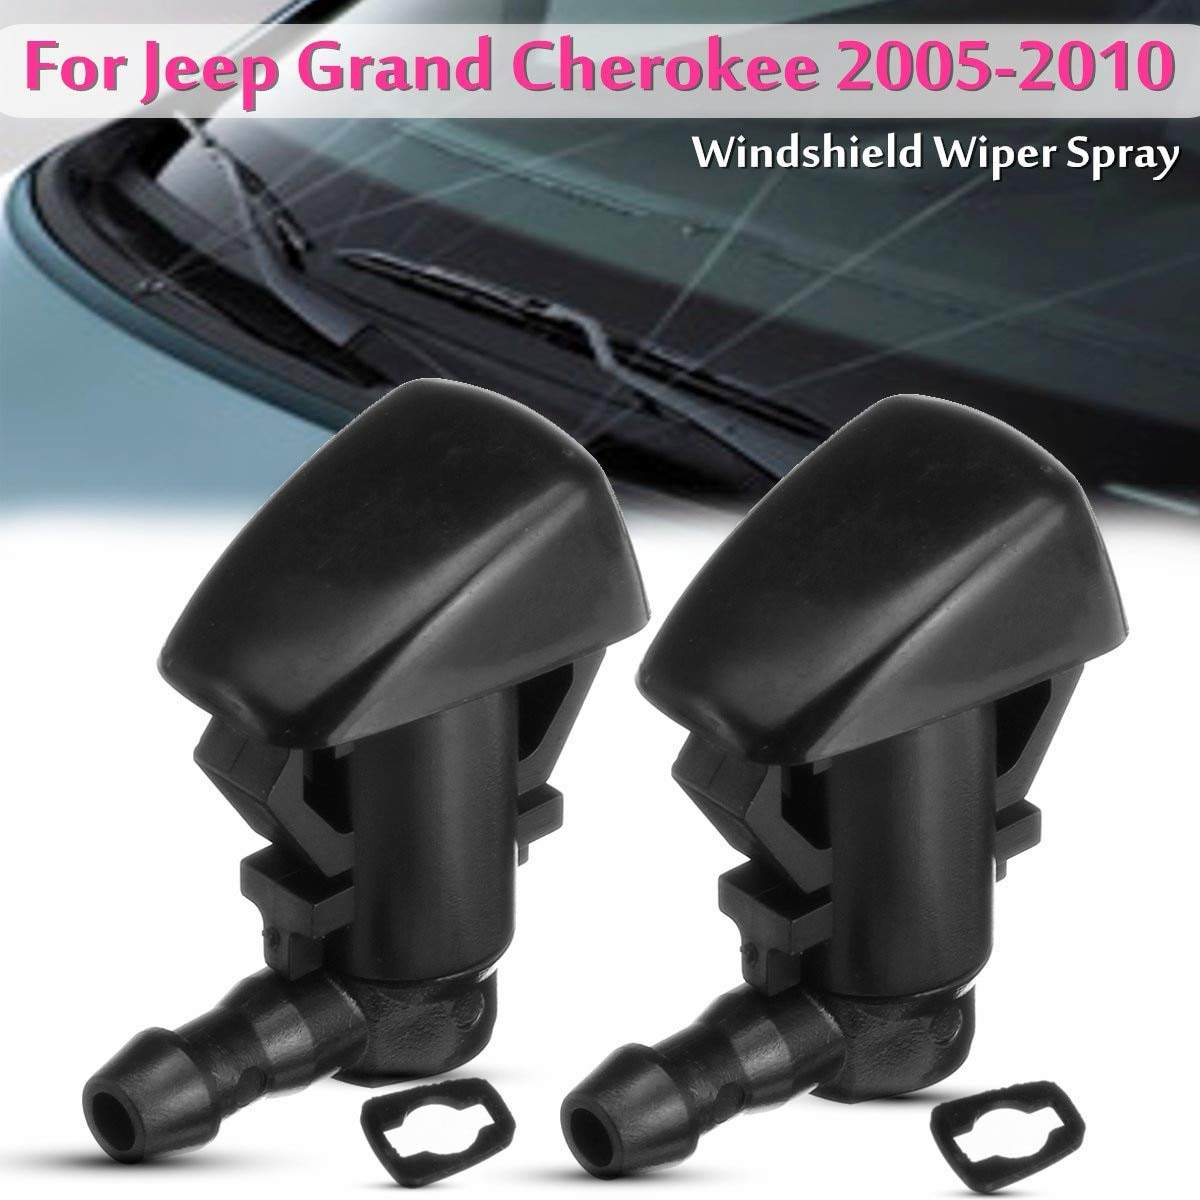 Automobiles & Motorcycles 2Pcs Car Front Windshield Wiper Water Spray Jet Washer Nozzle for Jeep Grand Cherokee 2005-2010 55372143-AB Occus